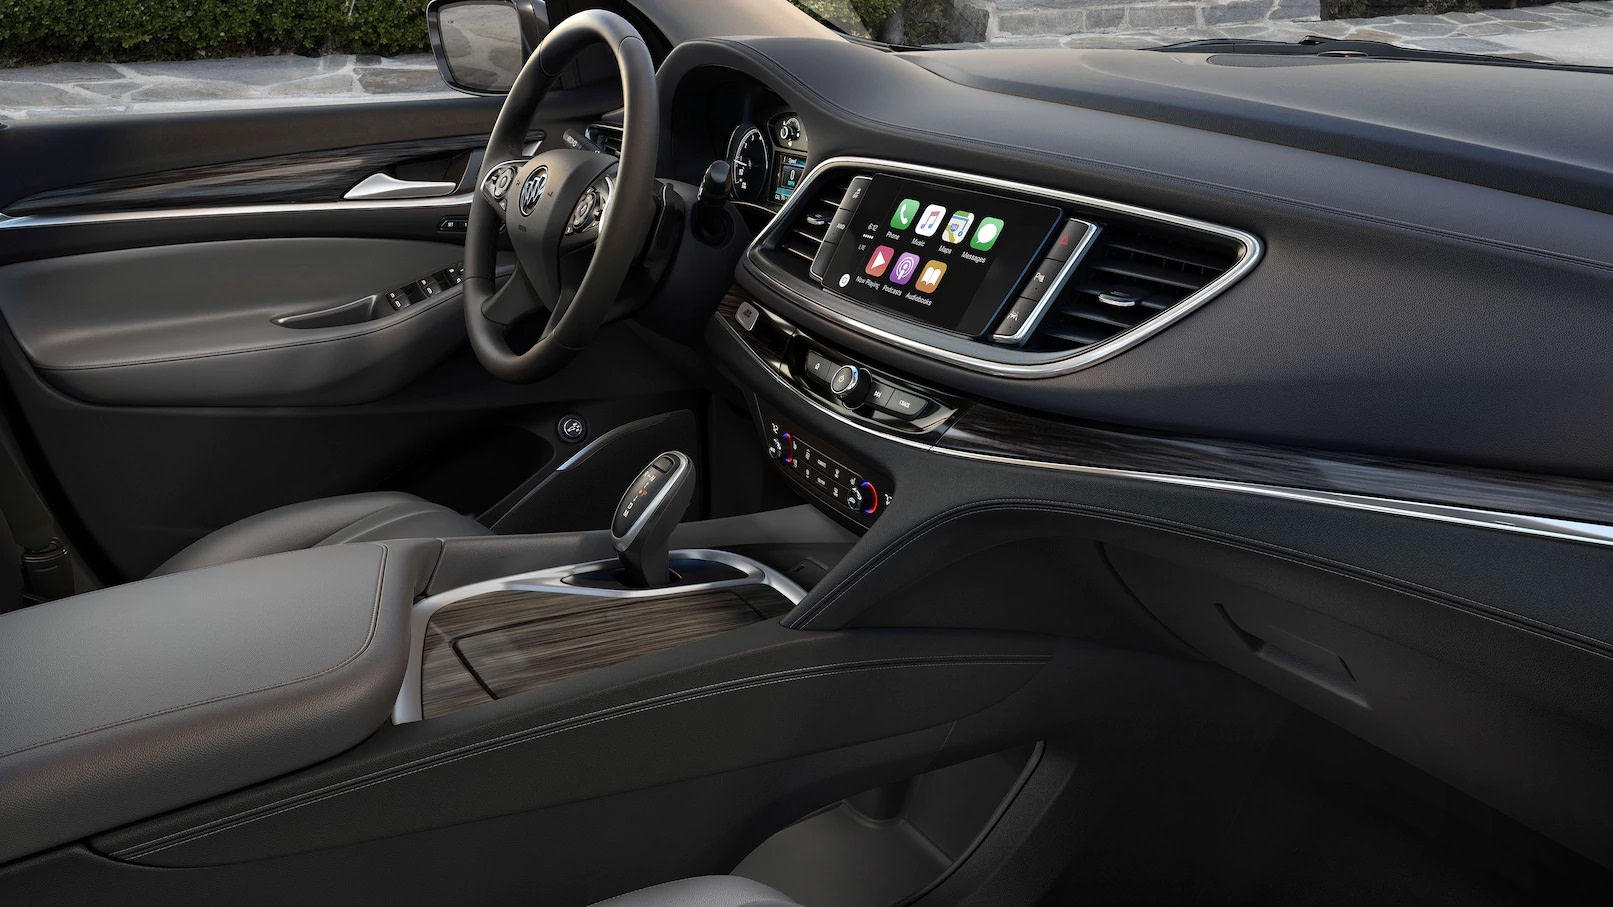 Interior of the 2018 Buick Enclave